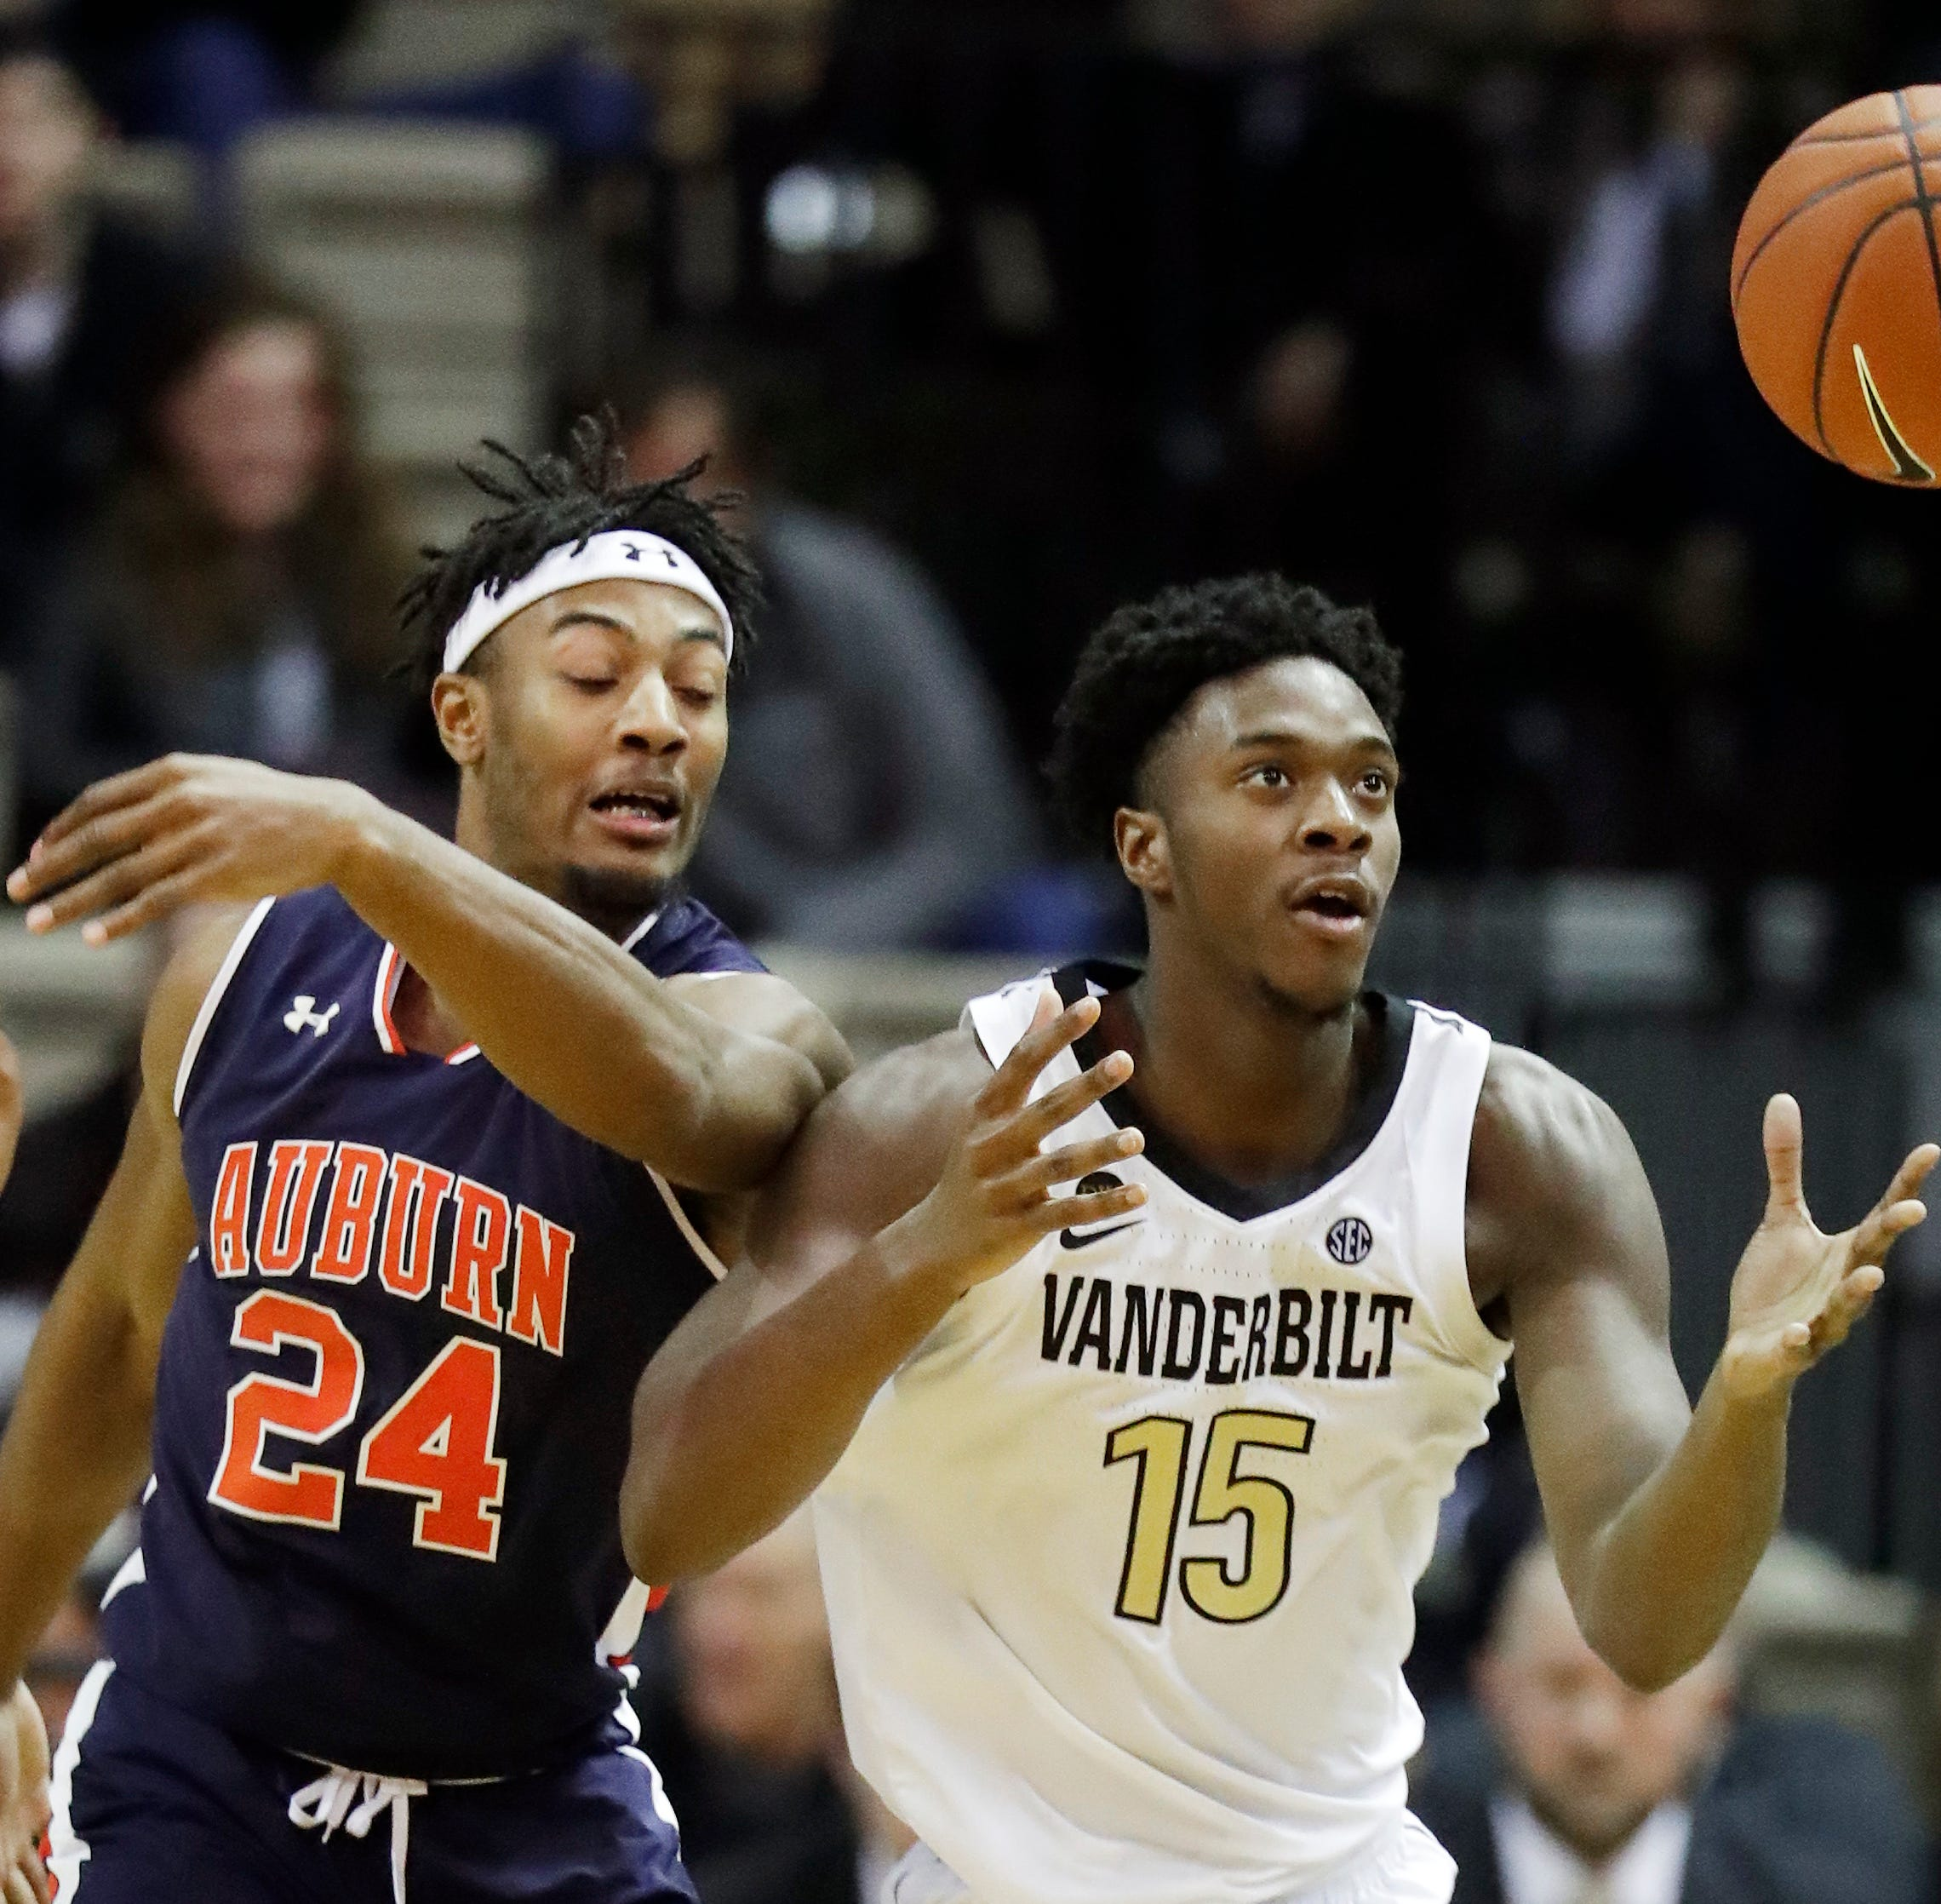 Vanderbilt basketball loses 13th straight, one shy of record, and Vols are next